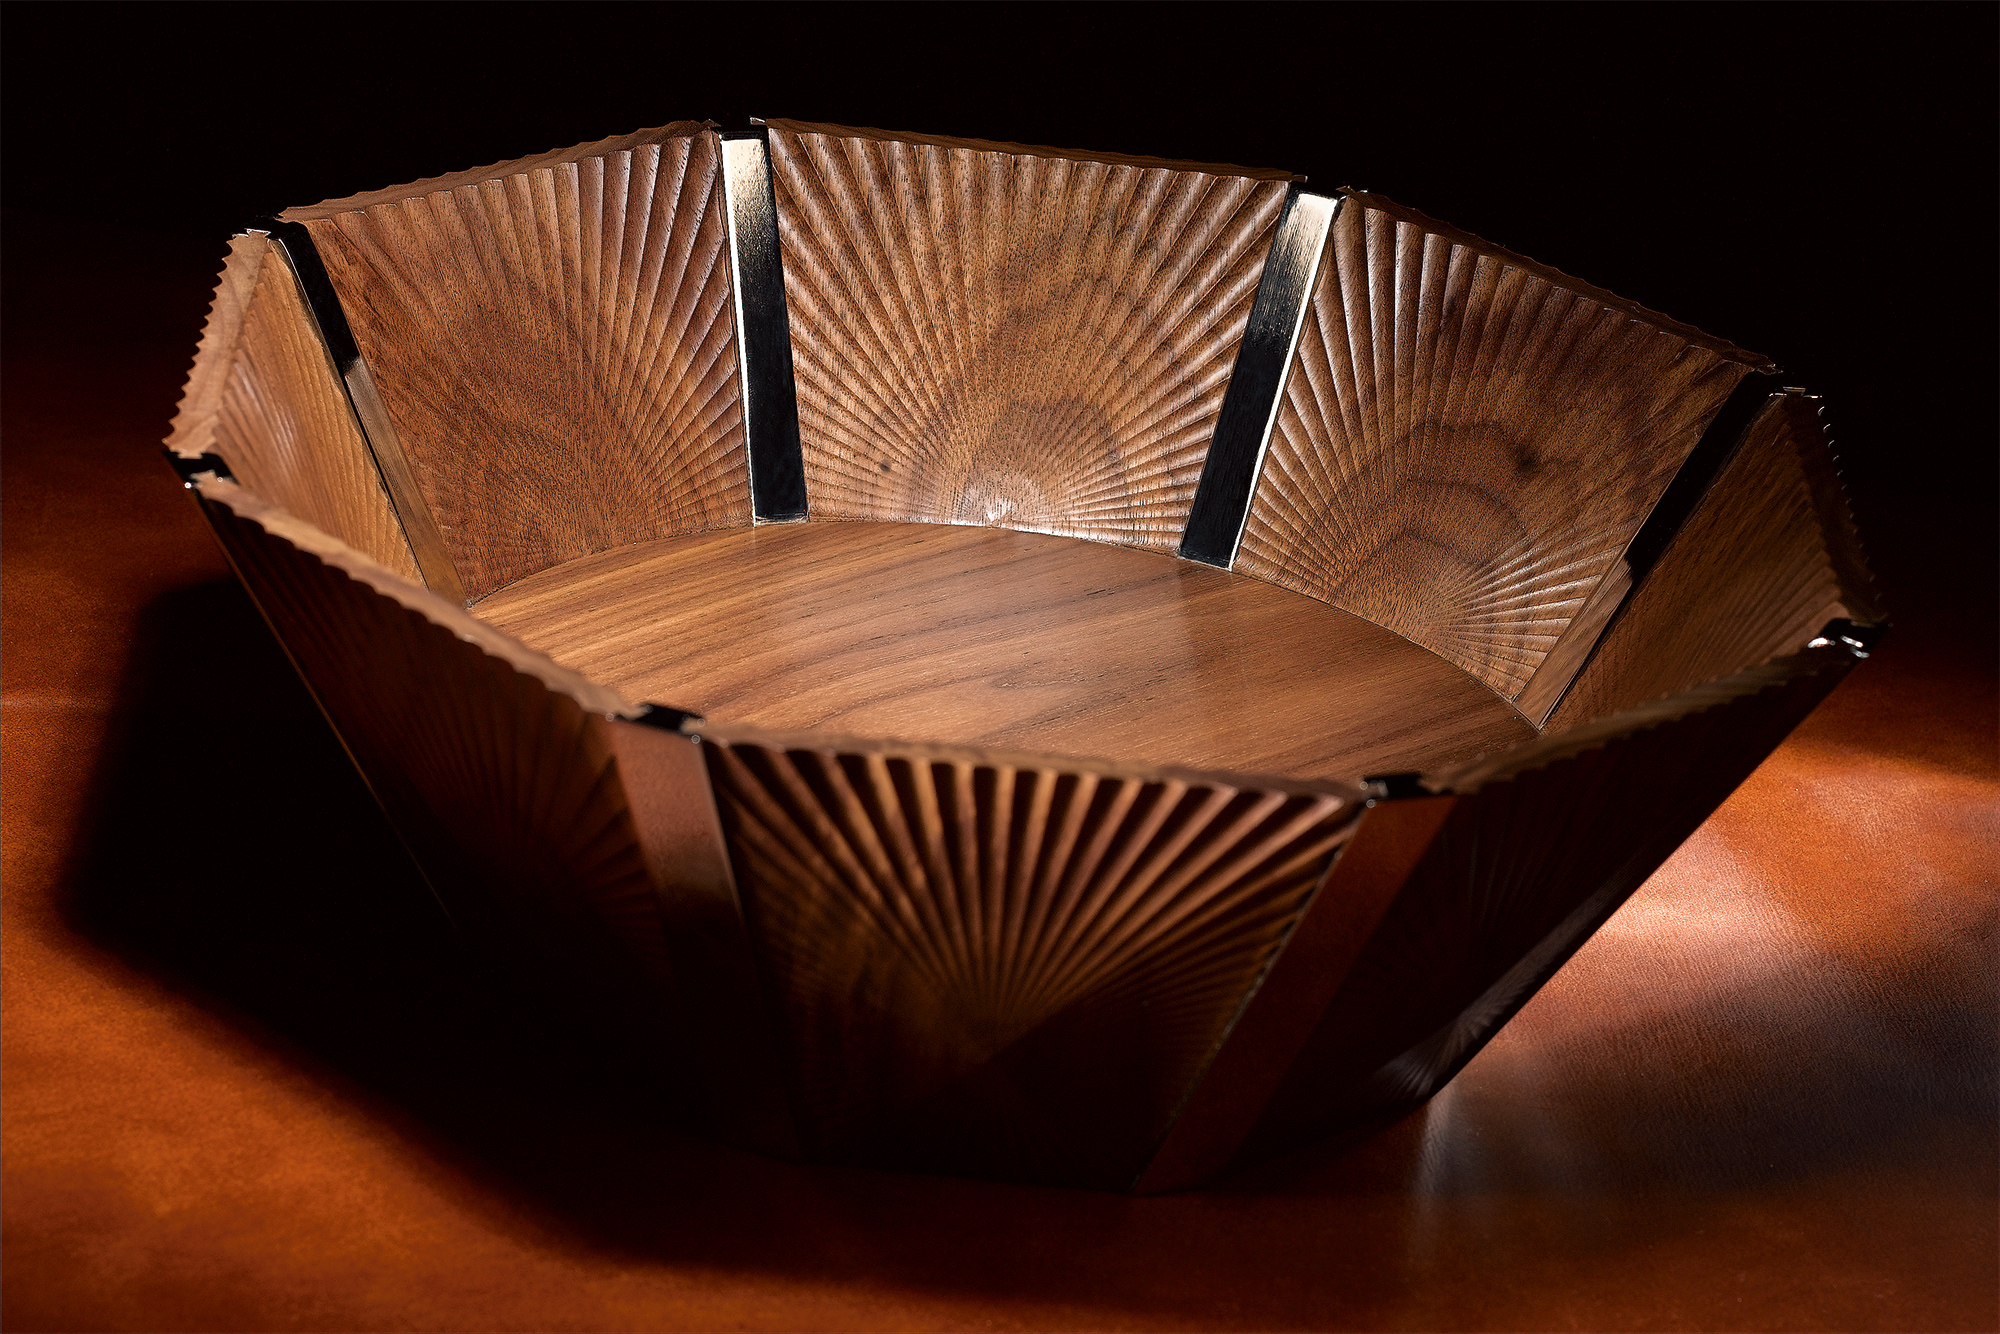 Mark wilkinson furniture collection craft 9